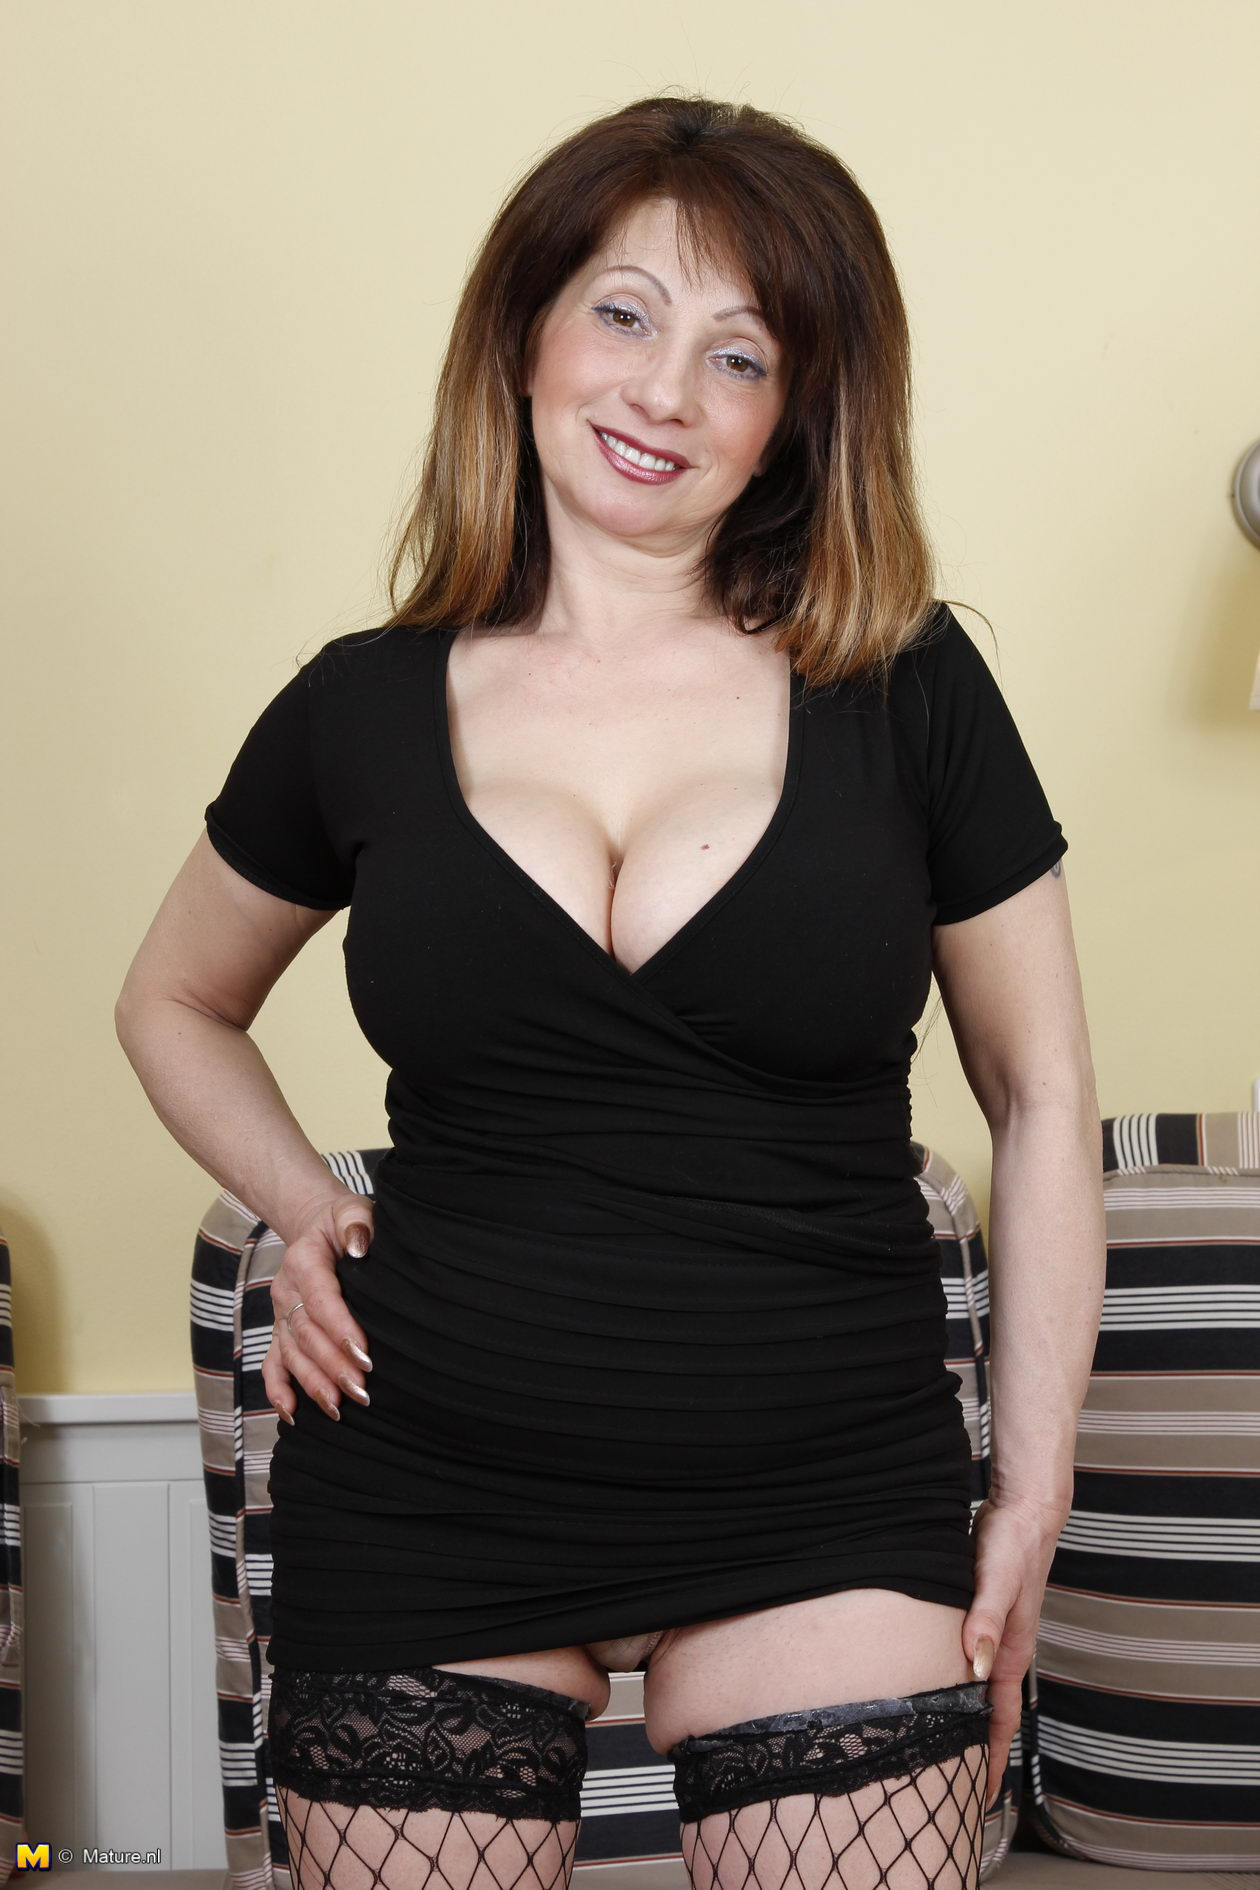 la ward milf women Sexy british milf gangbanged runtime: 12m:43s tags: british milf 6 years ago british slut isabel ice hav runtime: 41m:20s tags: british lesbian 6 years ago.